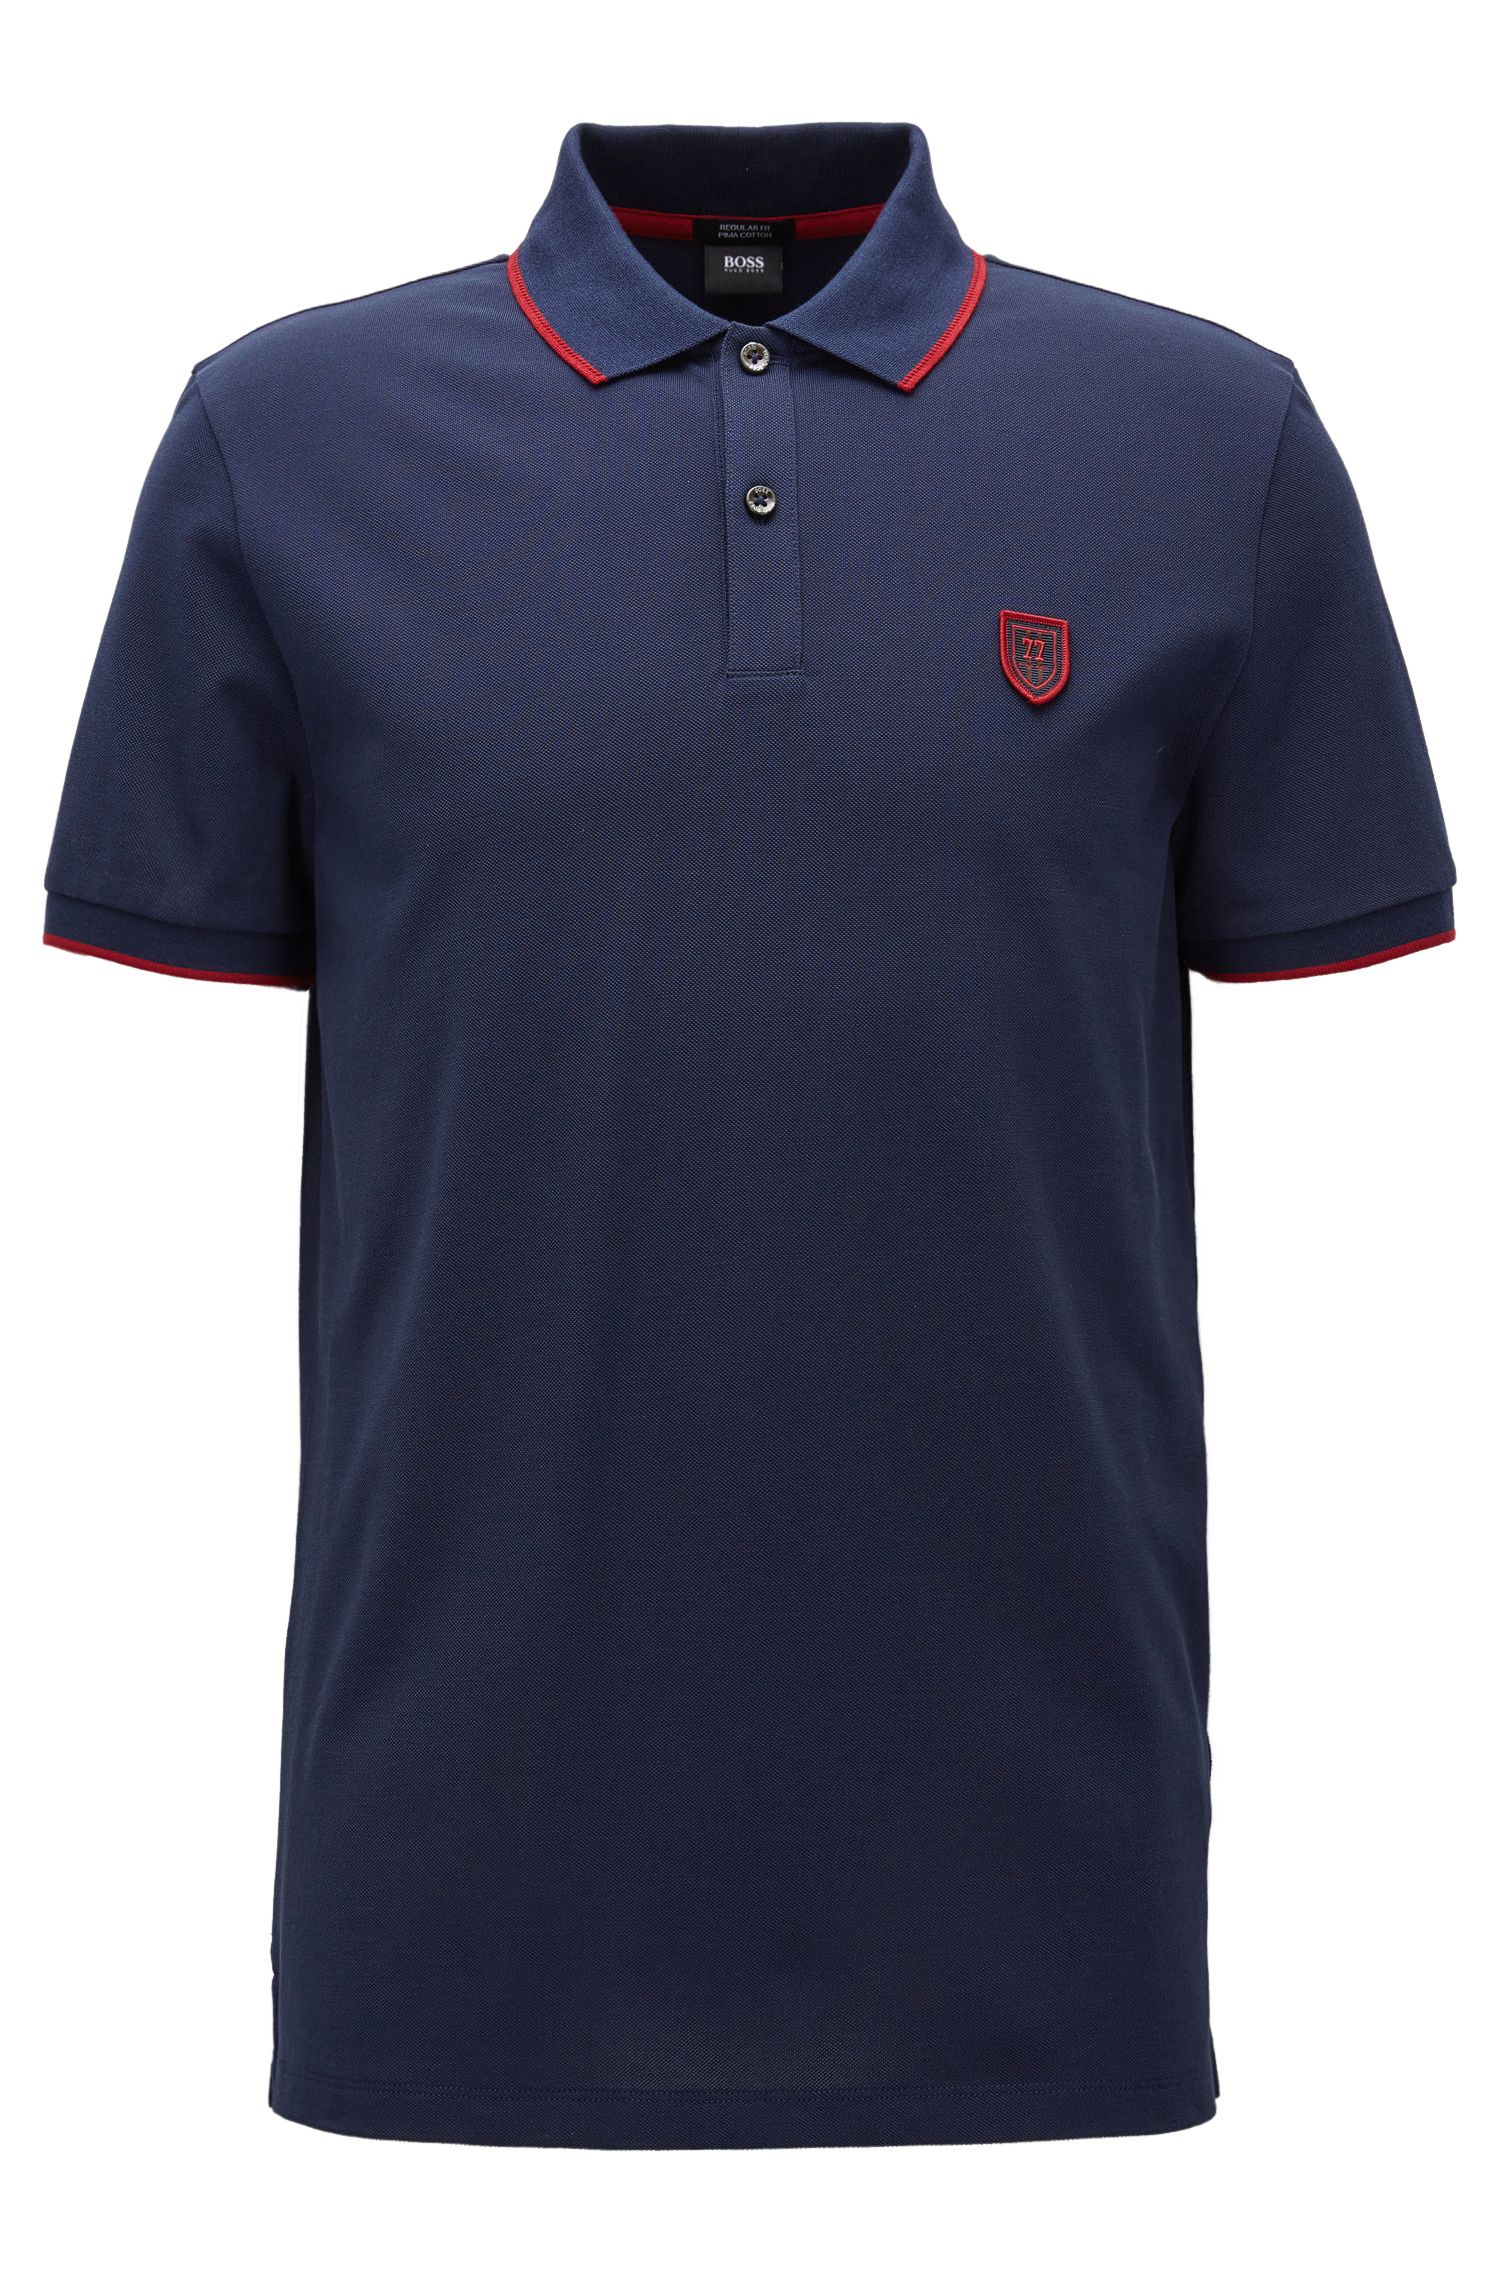 Piqué Cotton Polo Shirt, Regular Fit | Parlay